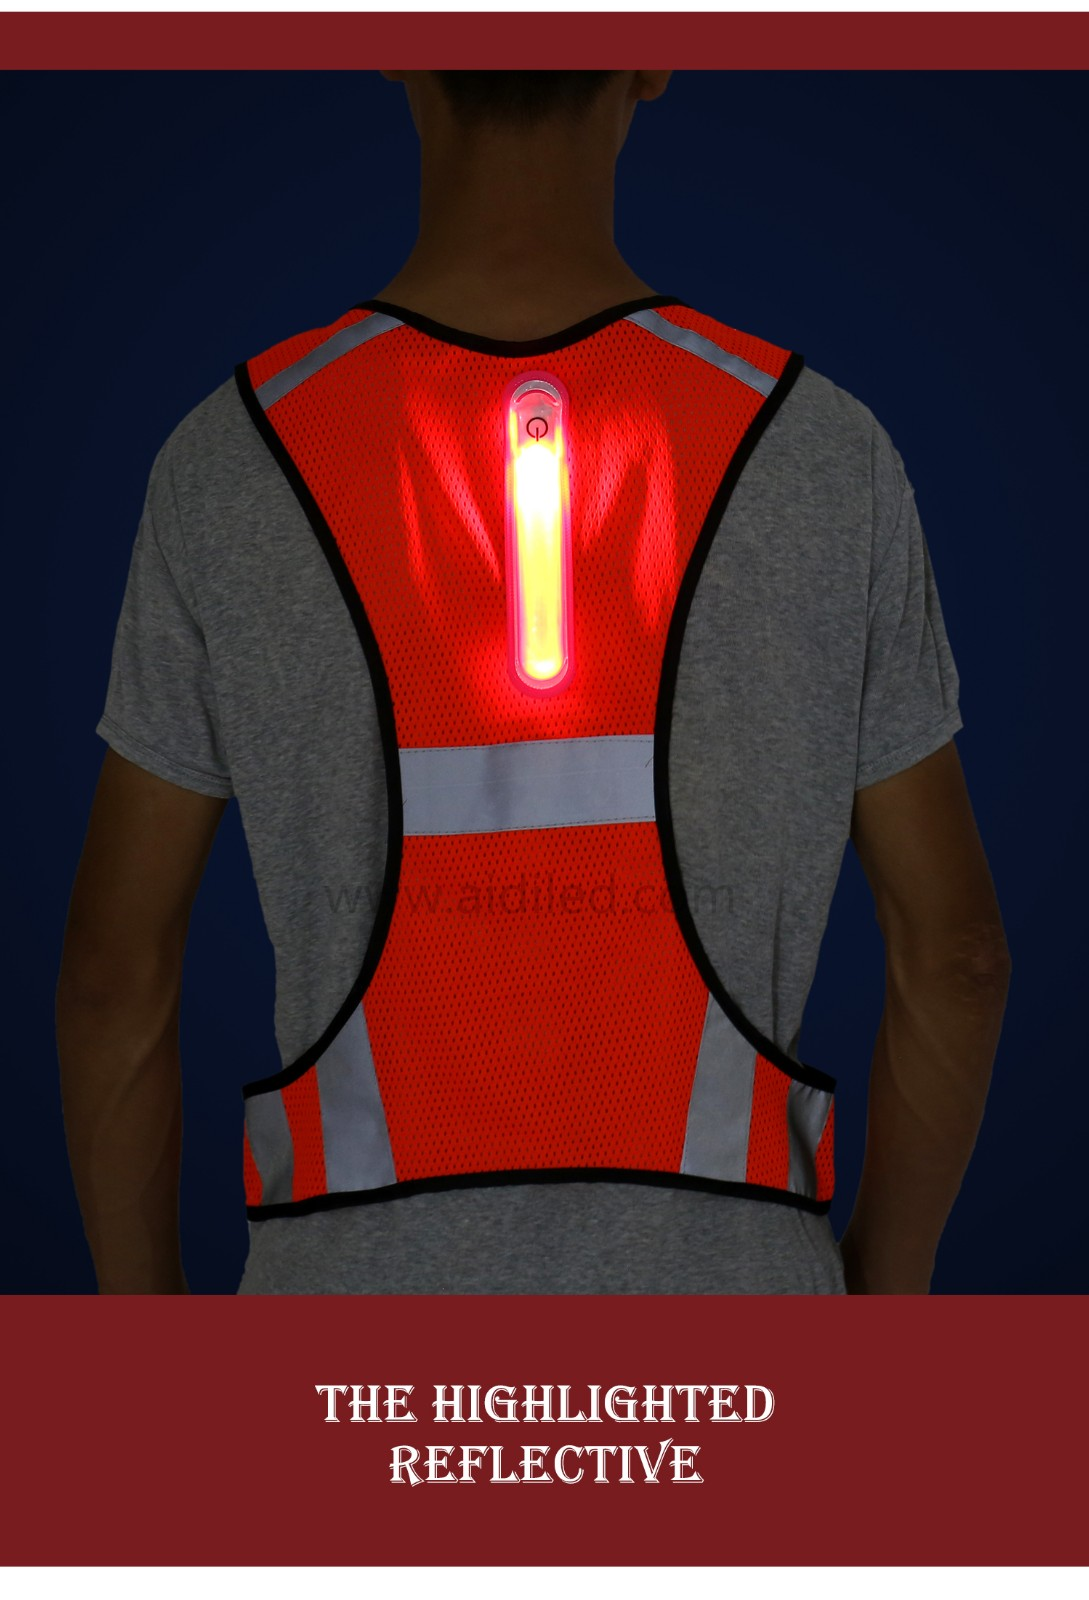 -| Led Outdoor Sports Safety Vest Aidi-s11 - Shenghong-3